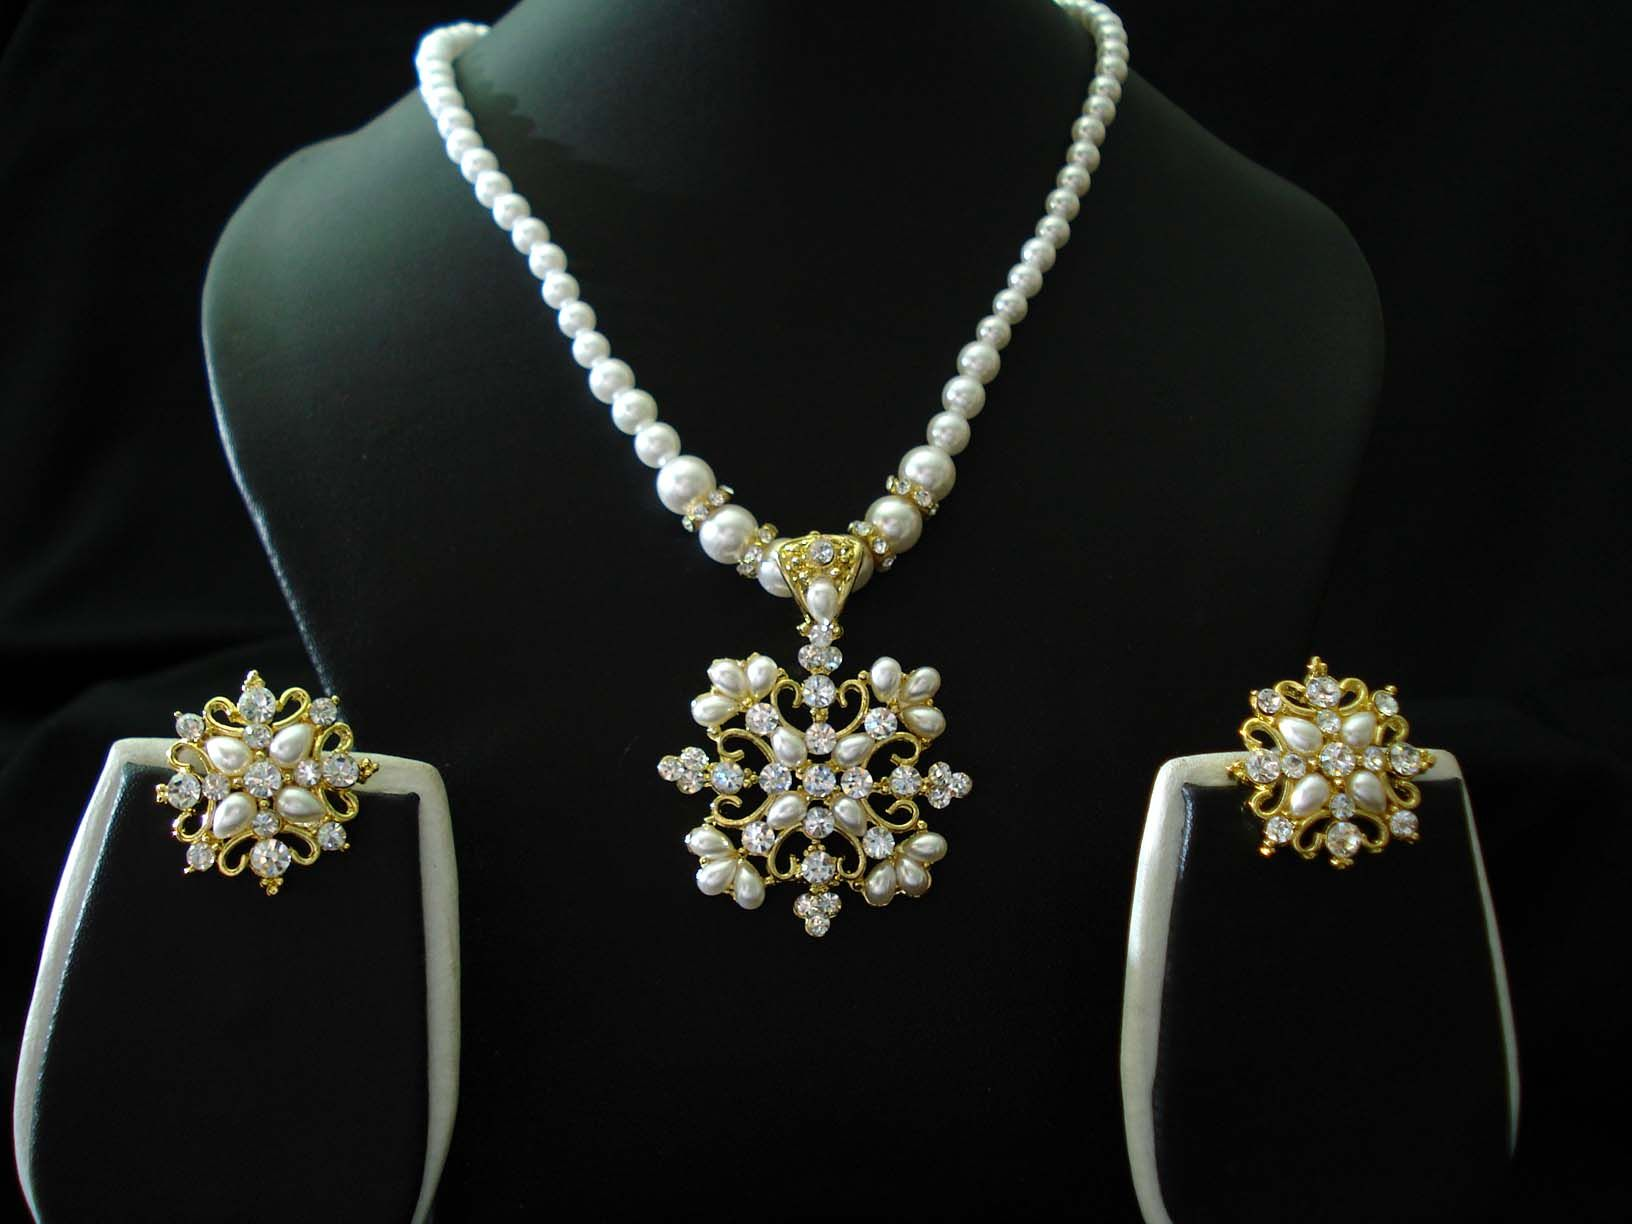 necklace design ideas on pearls jewelry designs pearls jewelry designs 5 beauty tips